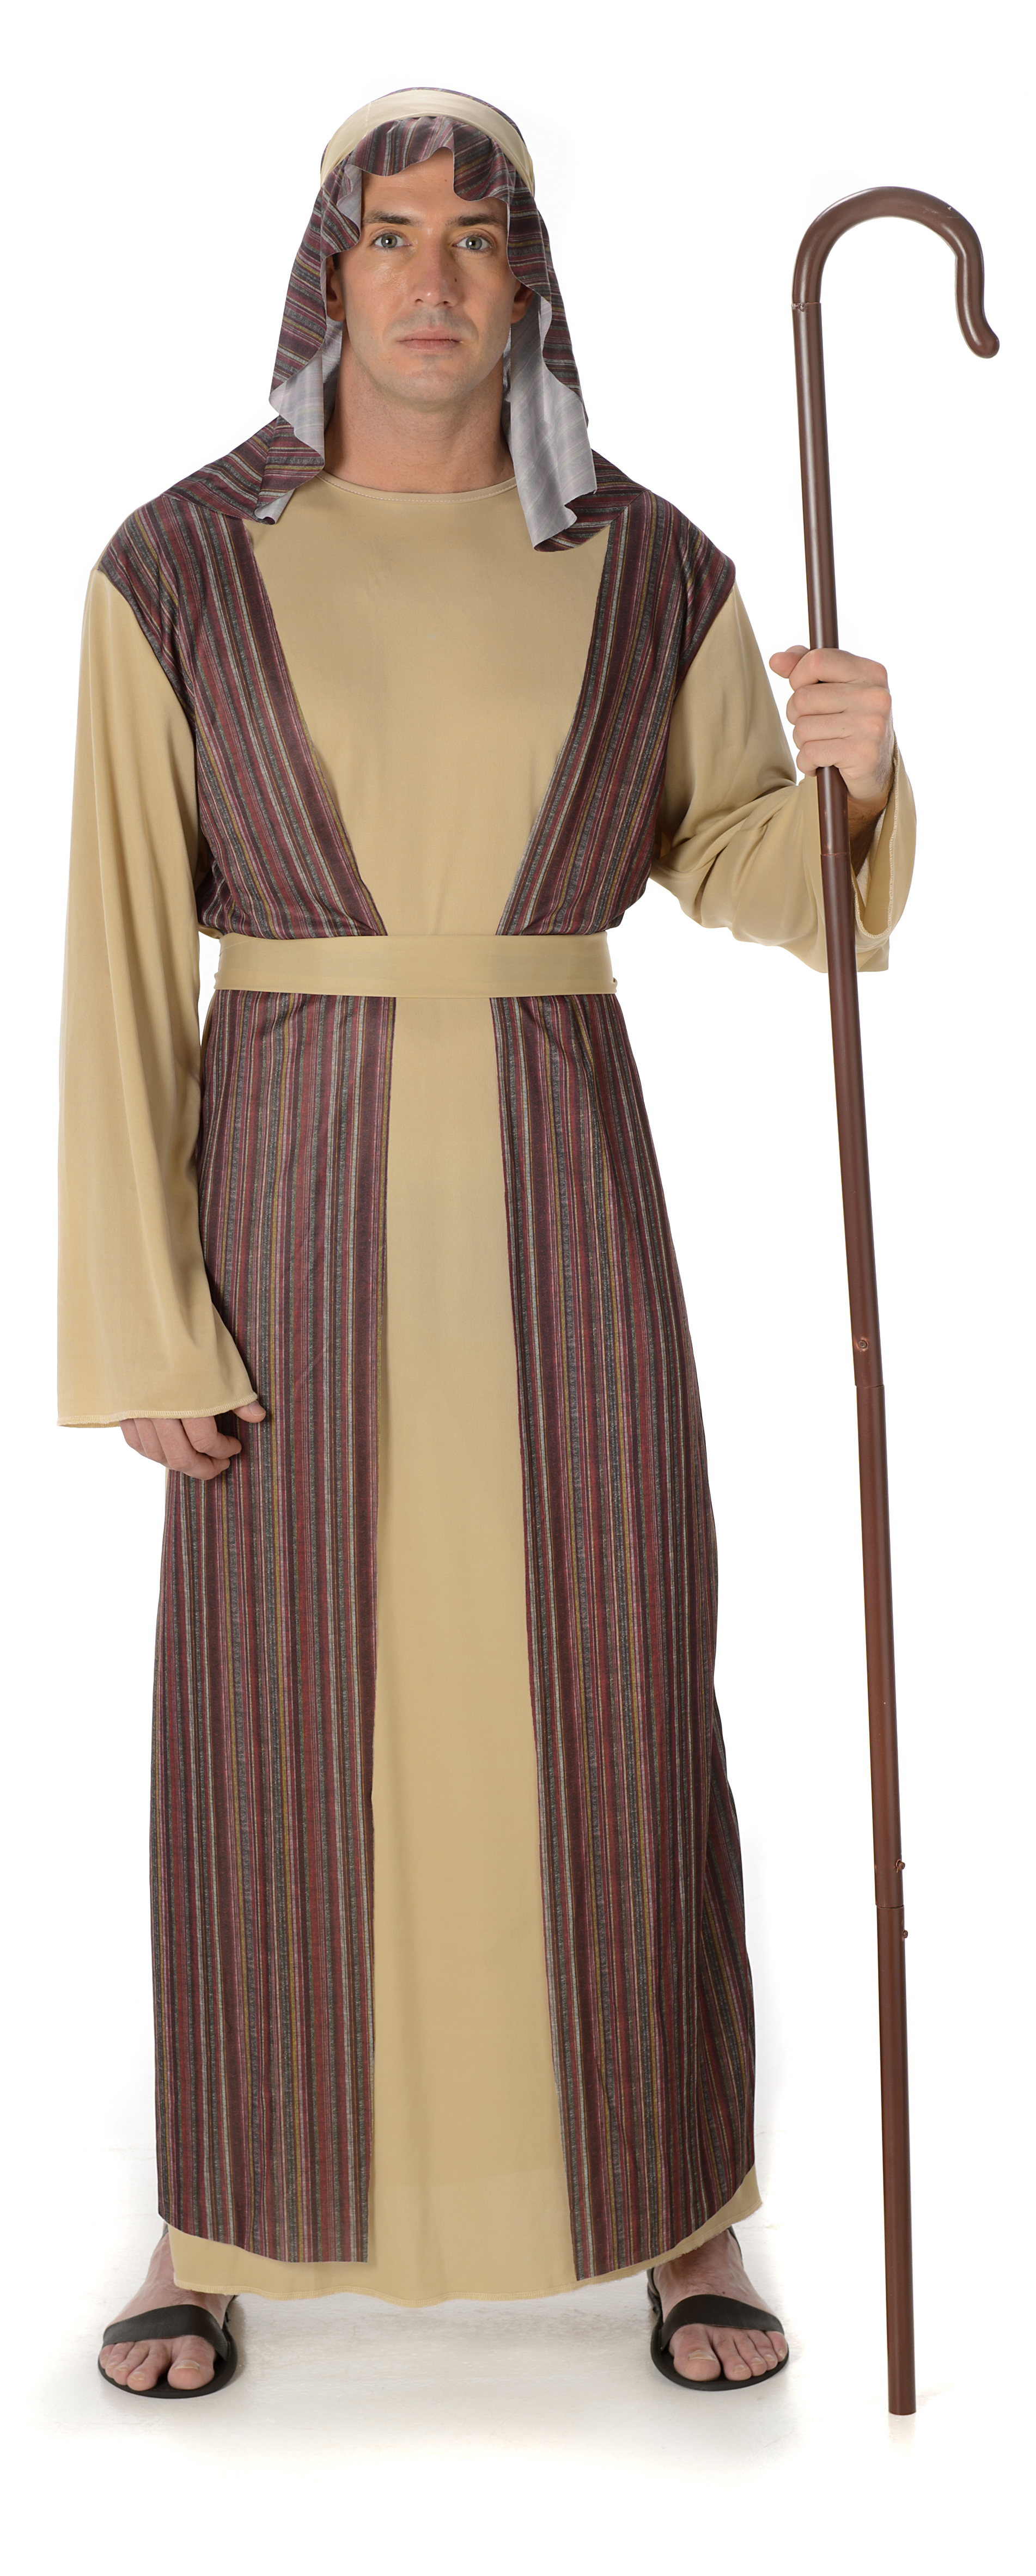 Adults Nativity Play Outfit Fancy Dress Christmas Party Festive Costume New